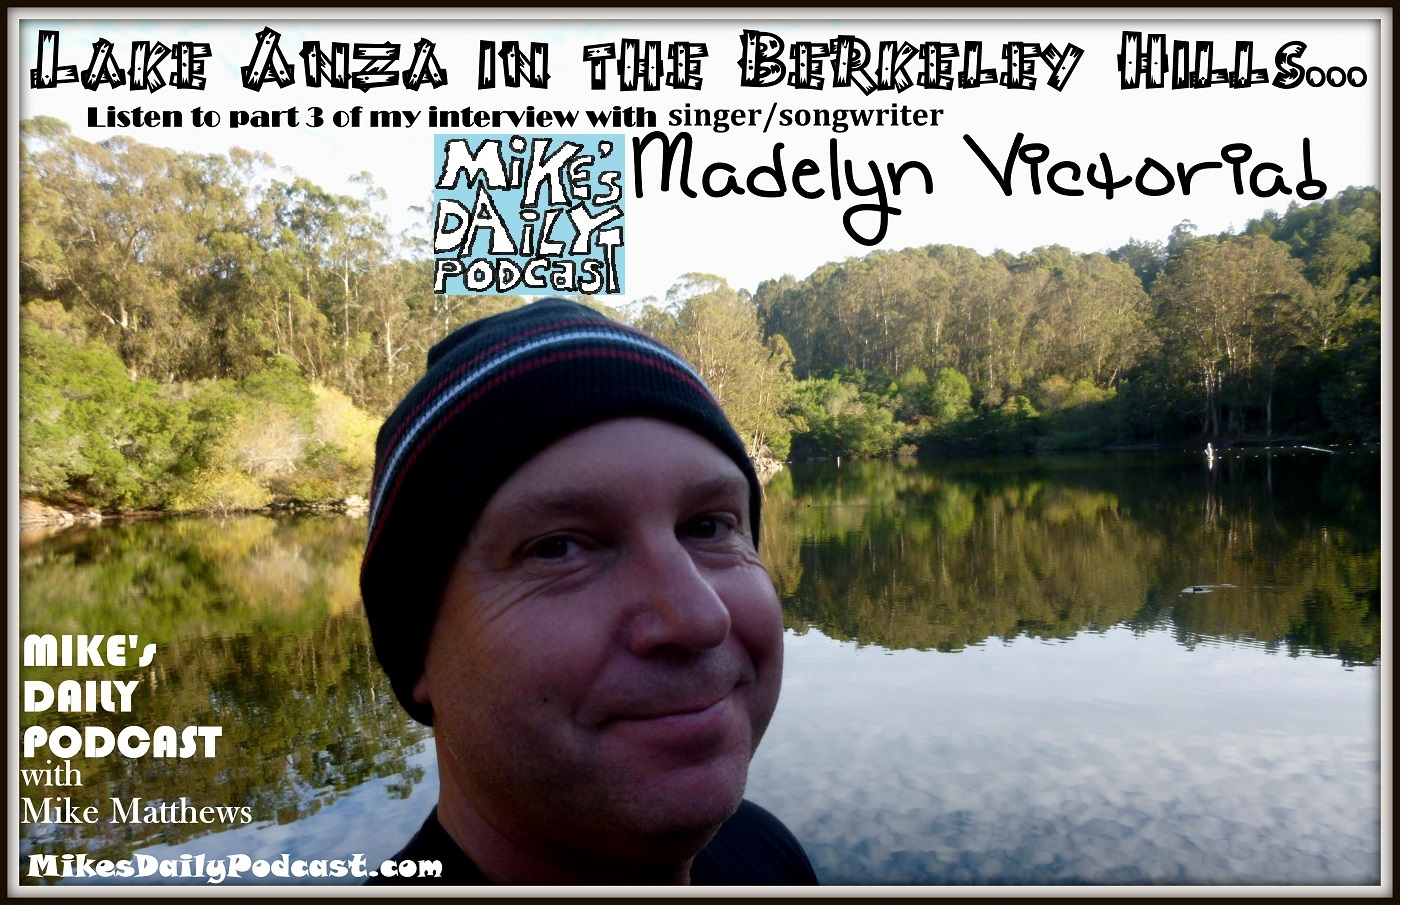 MIKEs DAILY PODCAST 965 Lake Anza Berkeley